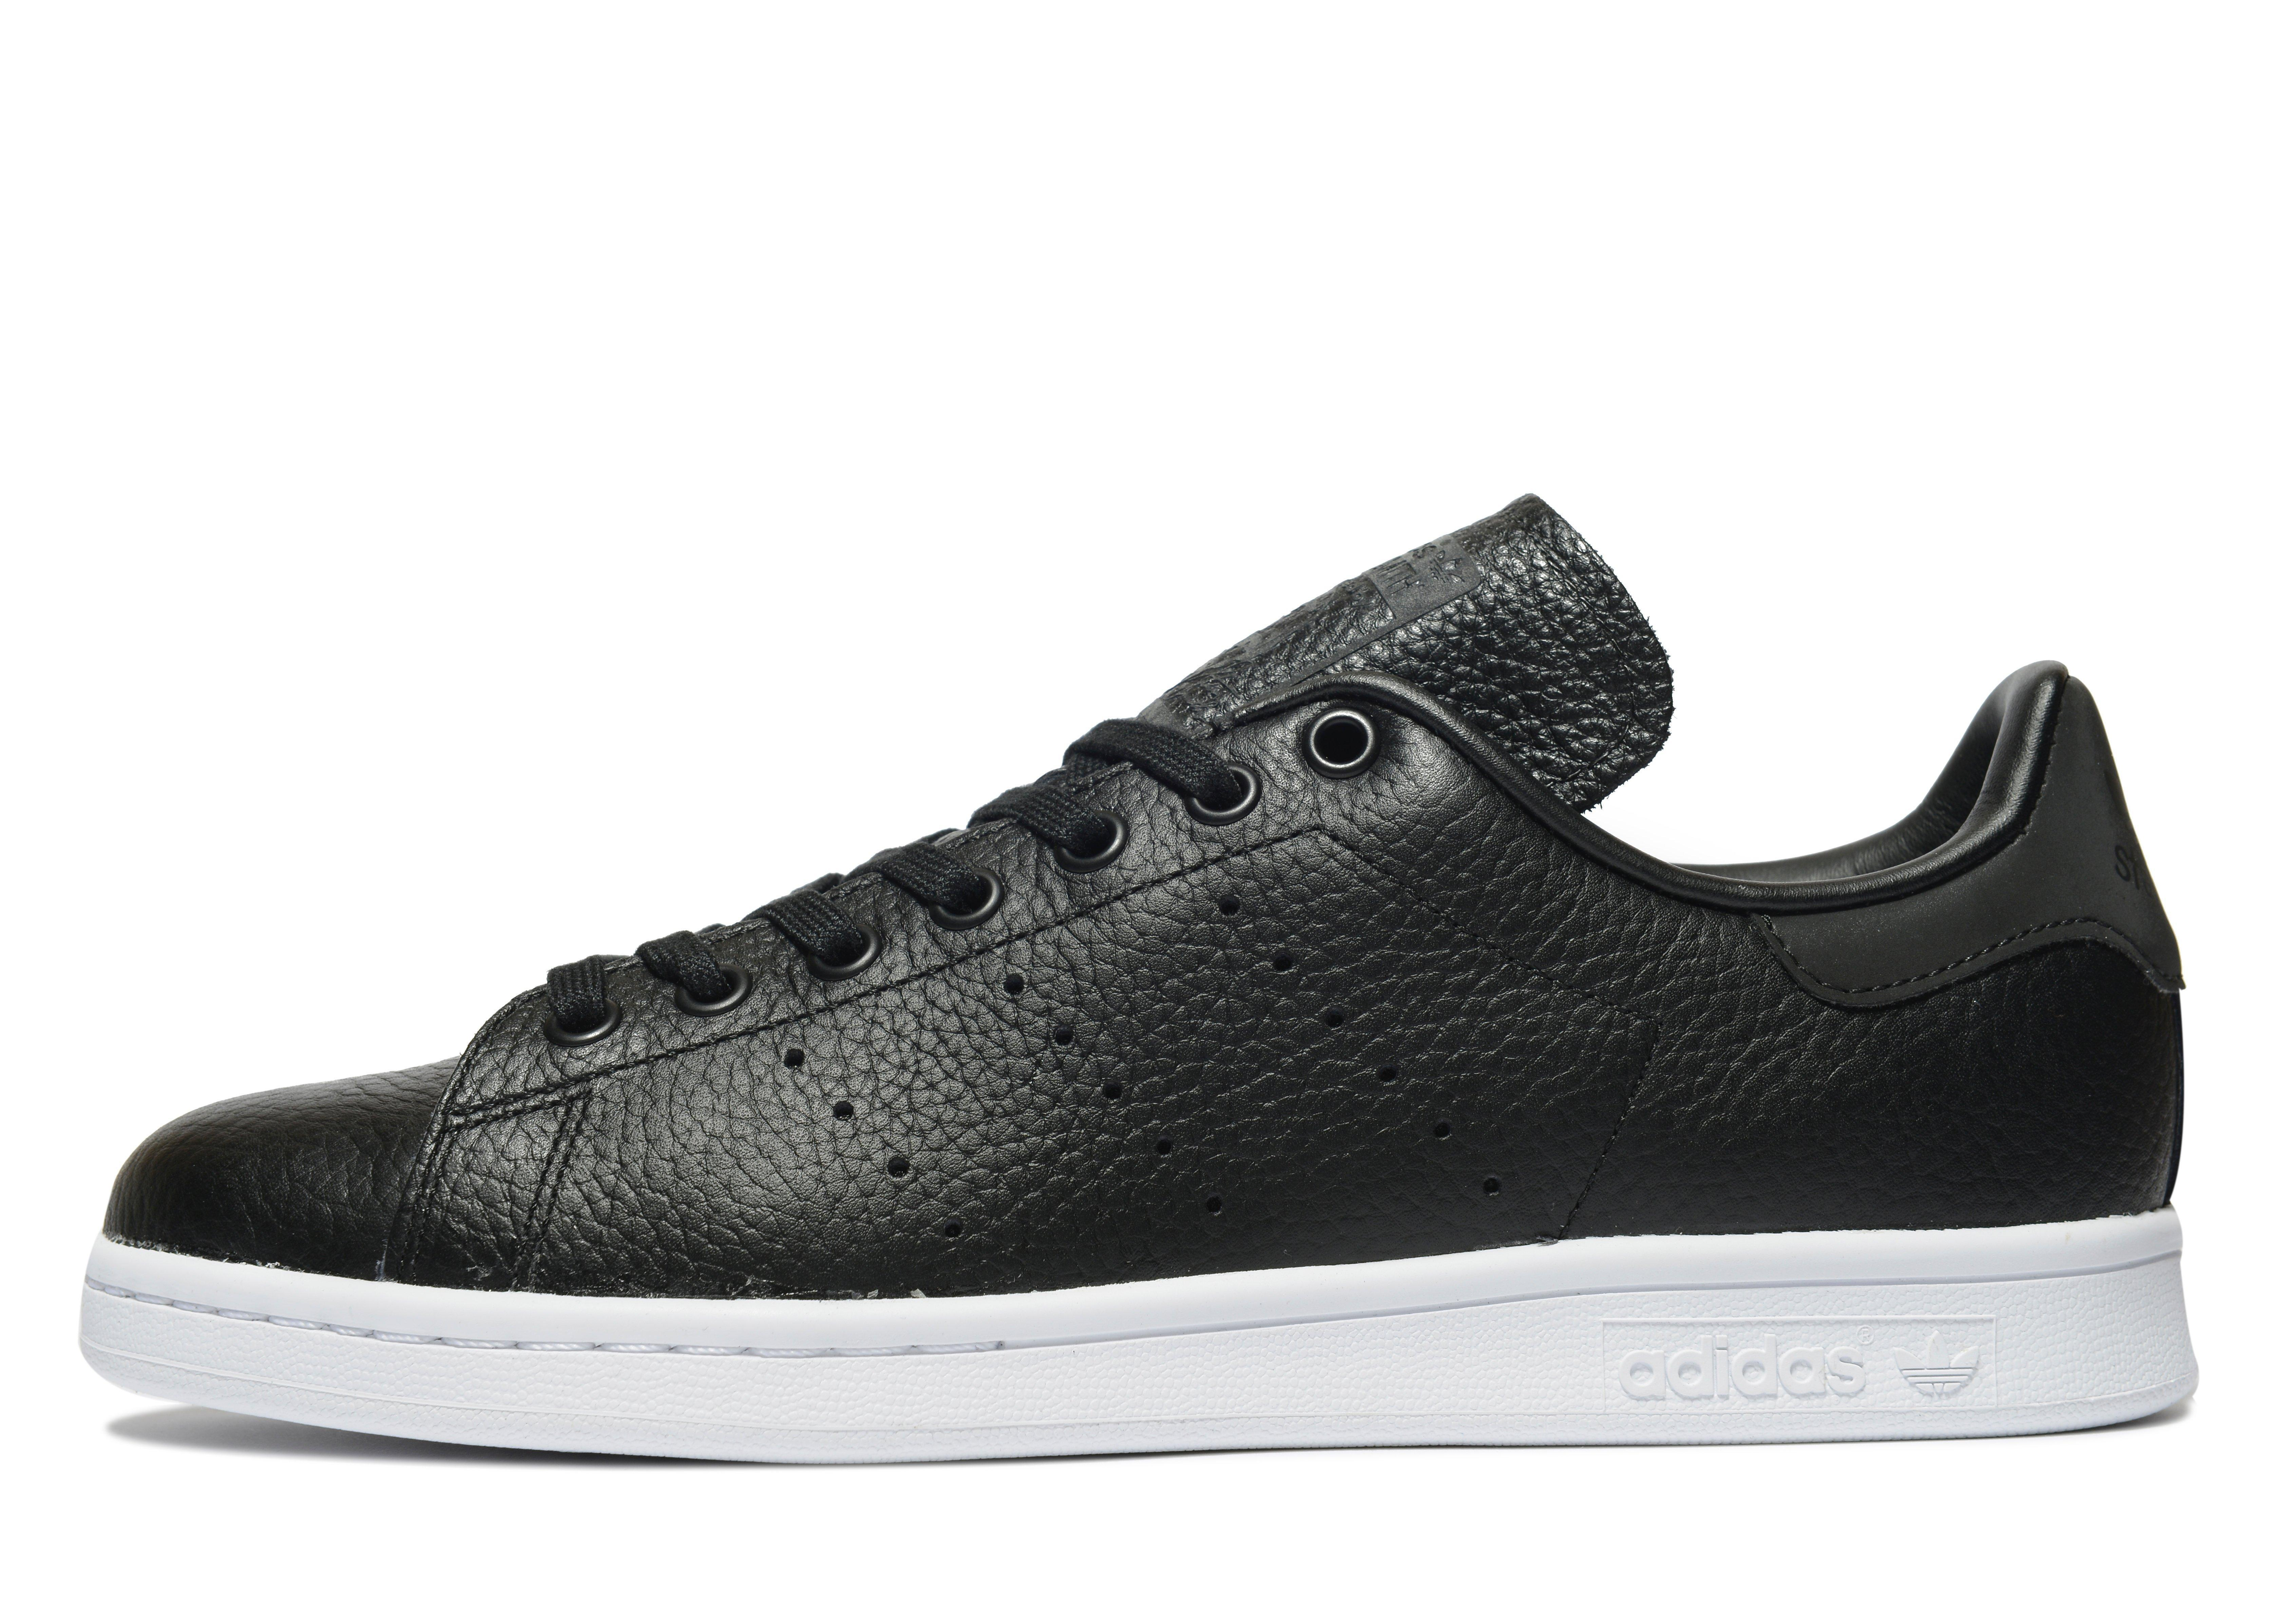 lyst adidas originals stan smith leather in black for men. Black Bedroom Furniture Sets. Home Design Ideas